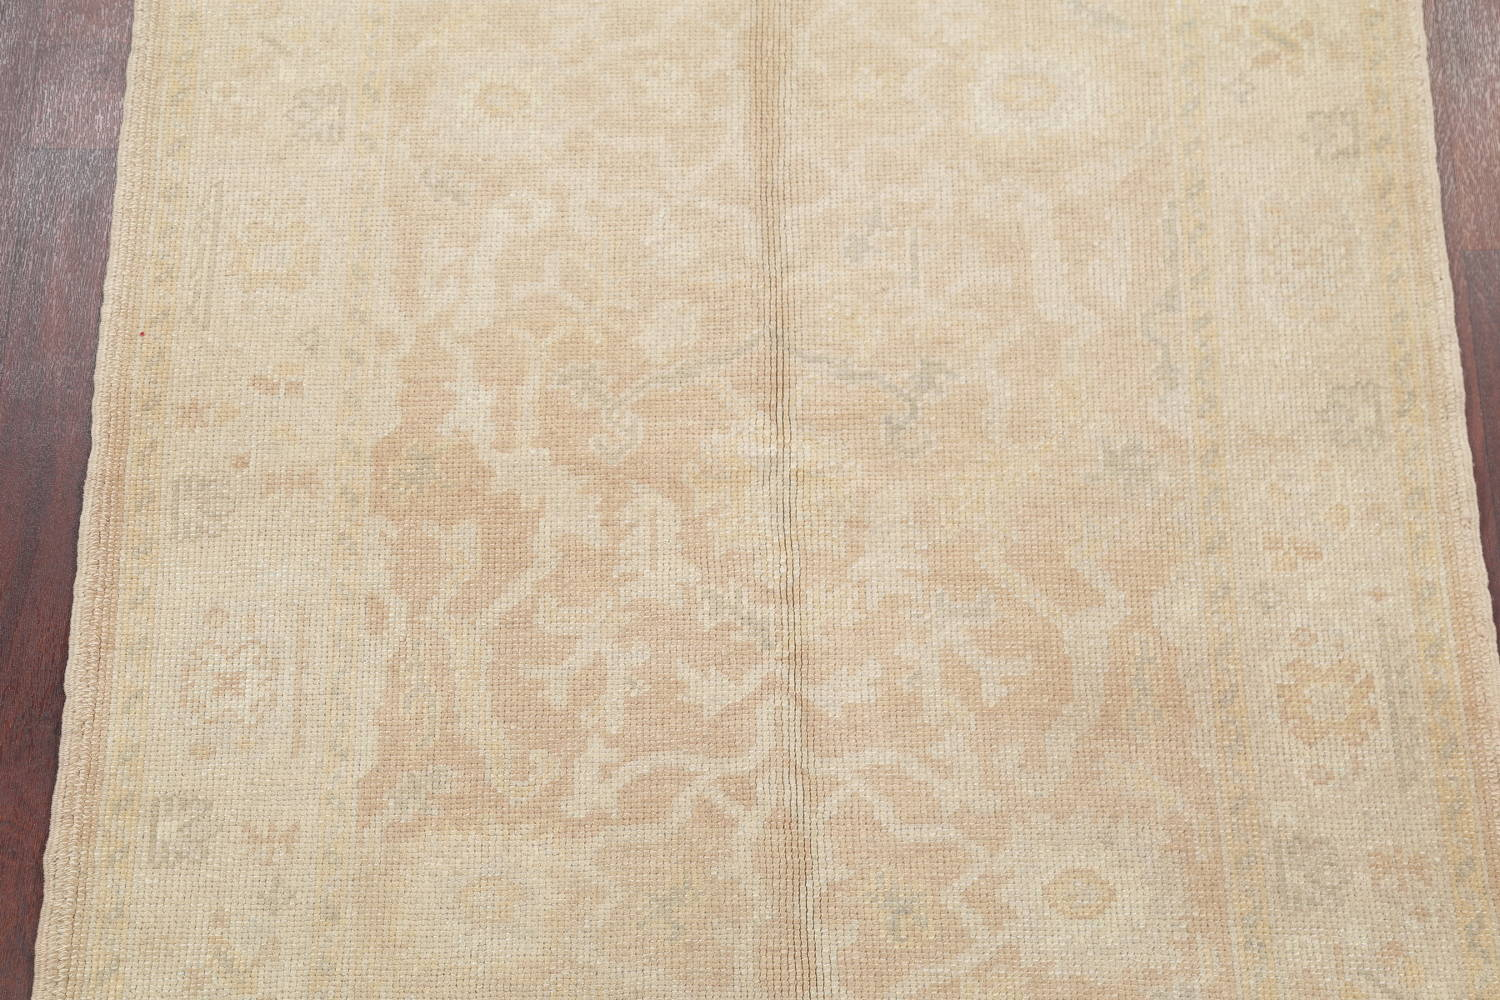 Vegetable Dye Muted Gold Oushak Turkish Hand-Knotted Area Rug 4x5 image 3